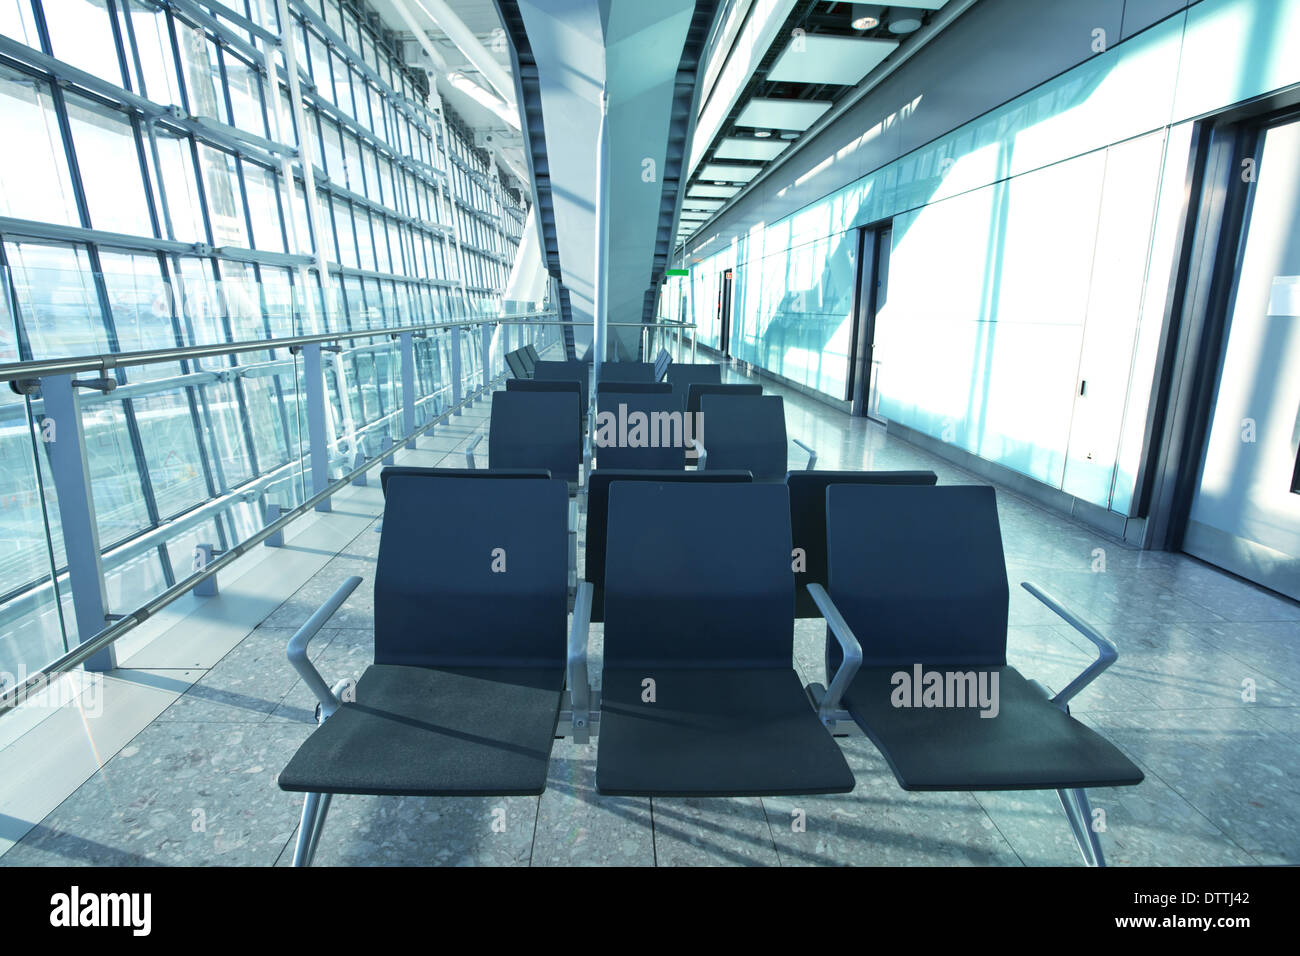 In airport - Stock Image